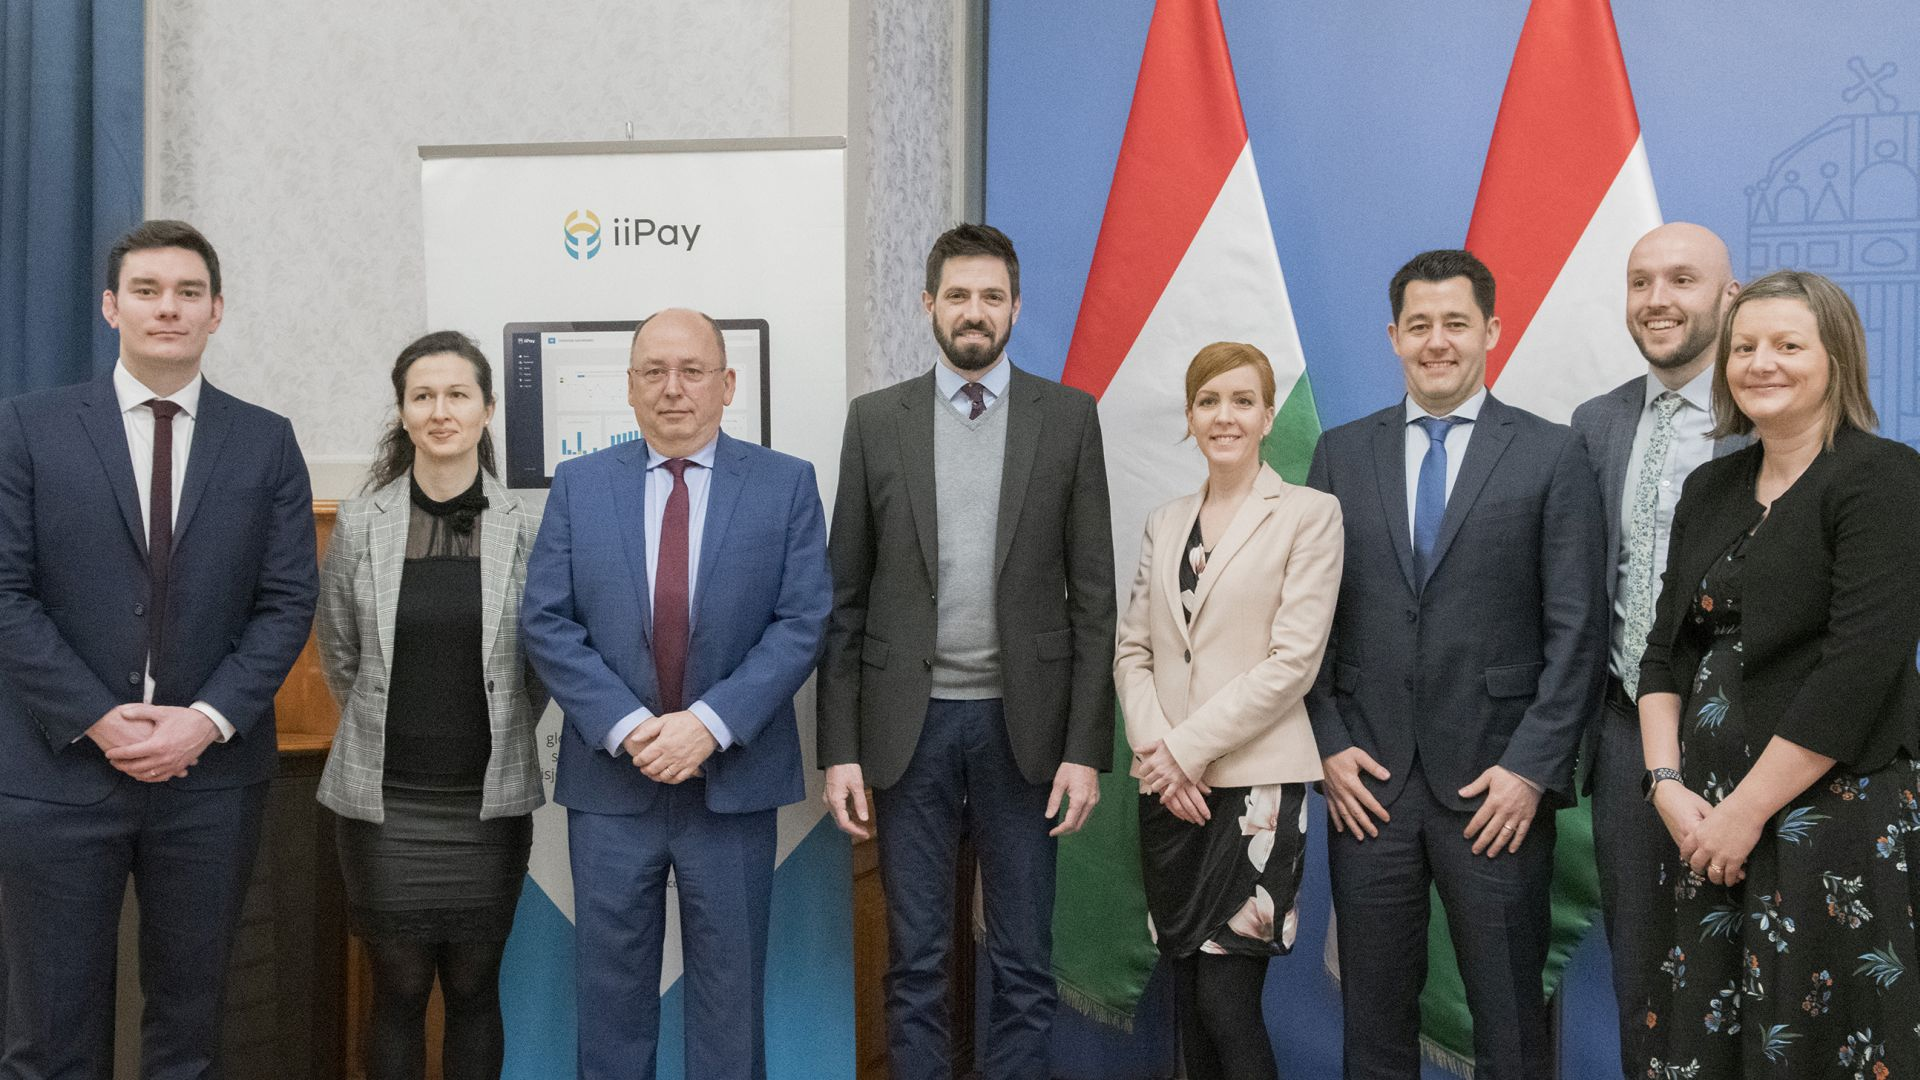 iiPay to open a new EMEA hub in Budapest